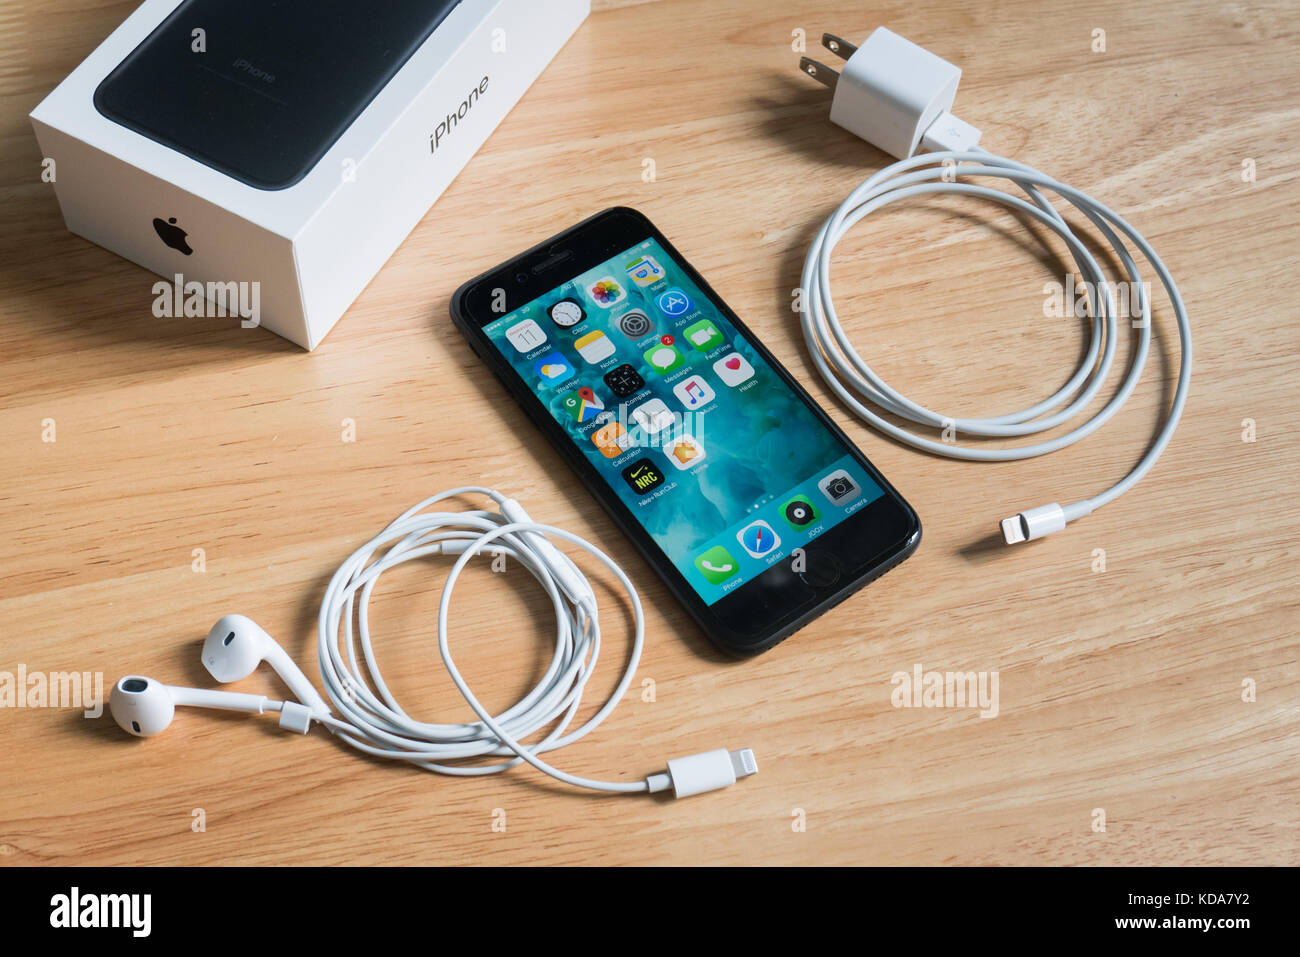 Bangkok, Thailand - October 11, 2017 : Apple iPhone 7 with Earpods, power adapter and the box package. Stock Photo